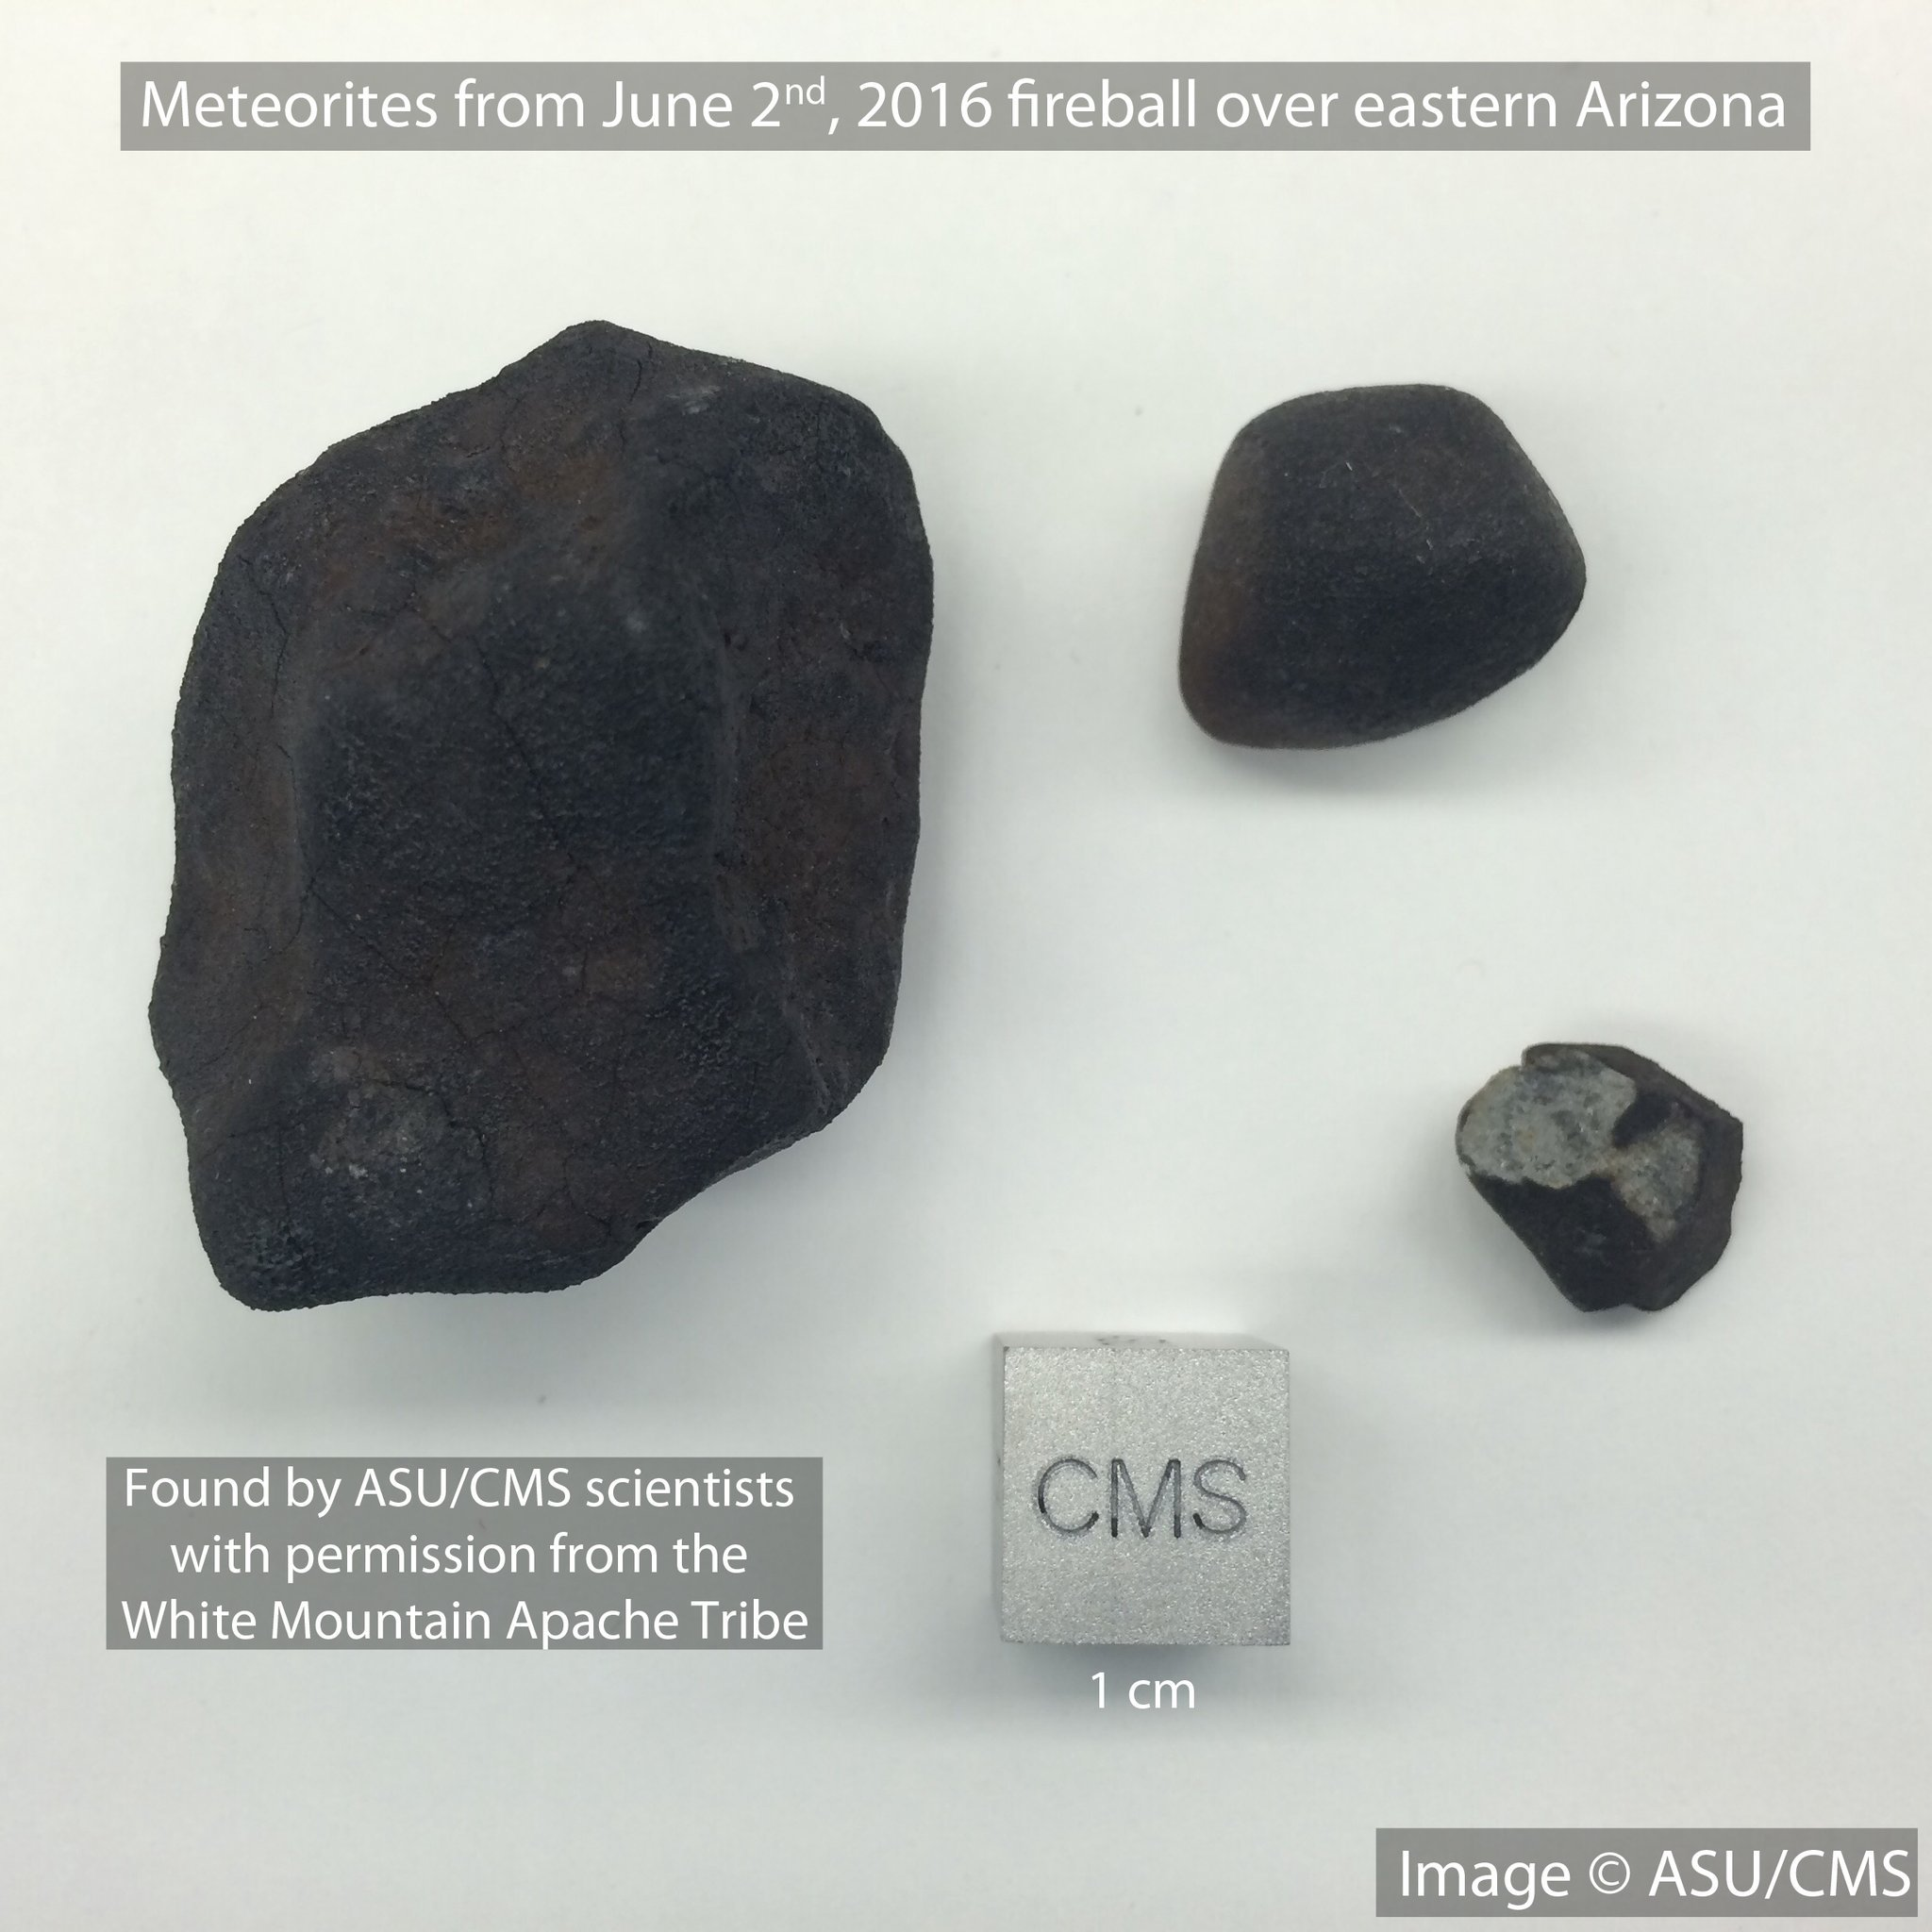 Arizona State University says researchers have found pieces of a small asteroid spotted over eastern Arizona earlier this month. (Source: ASU)